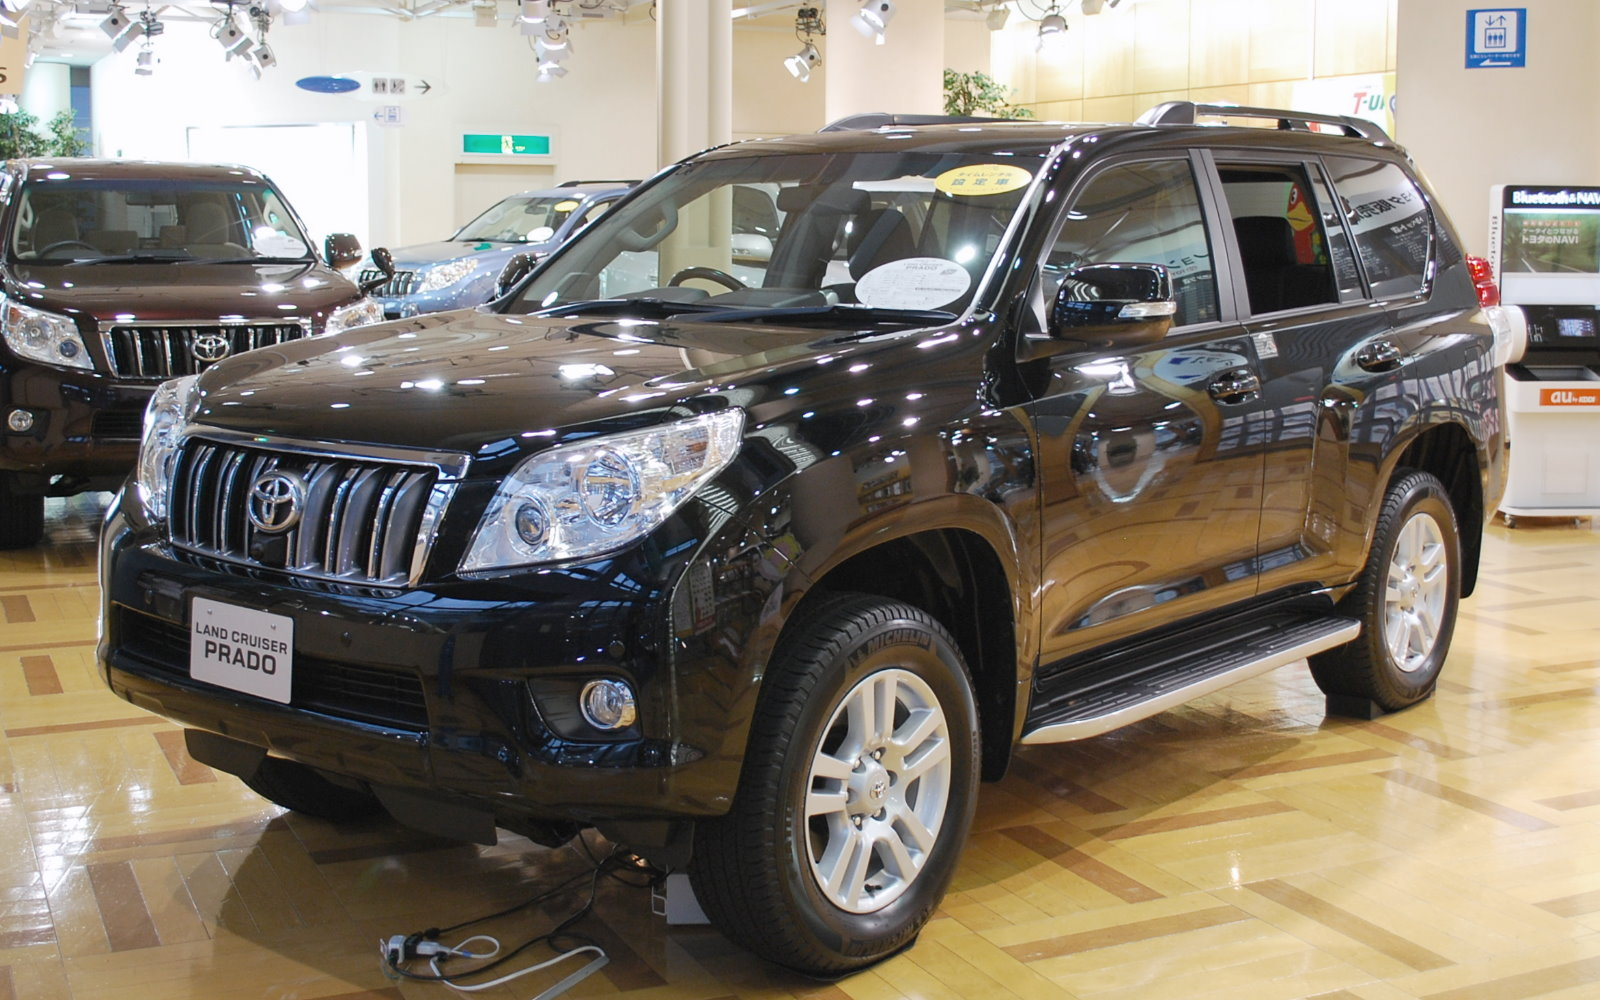 File:2009 Toyota Land Cruiser-Prado 01.jpg